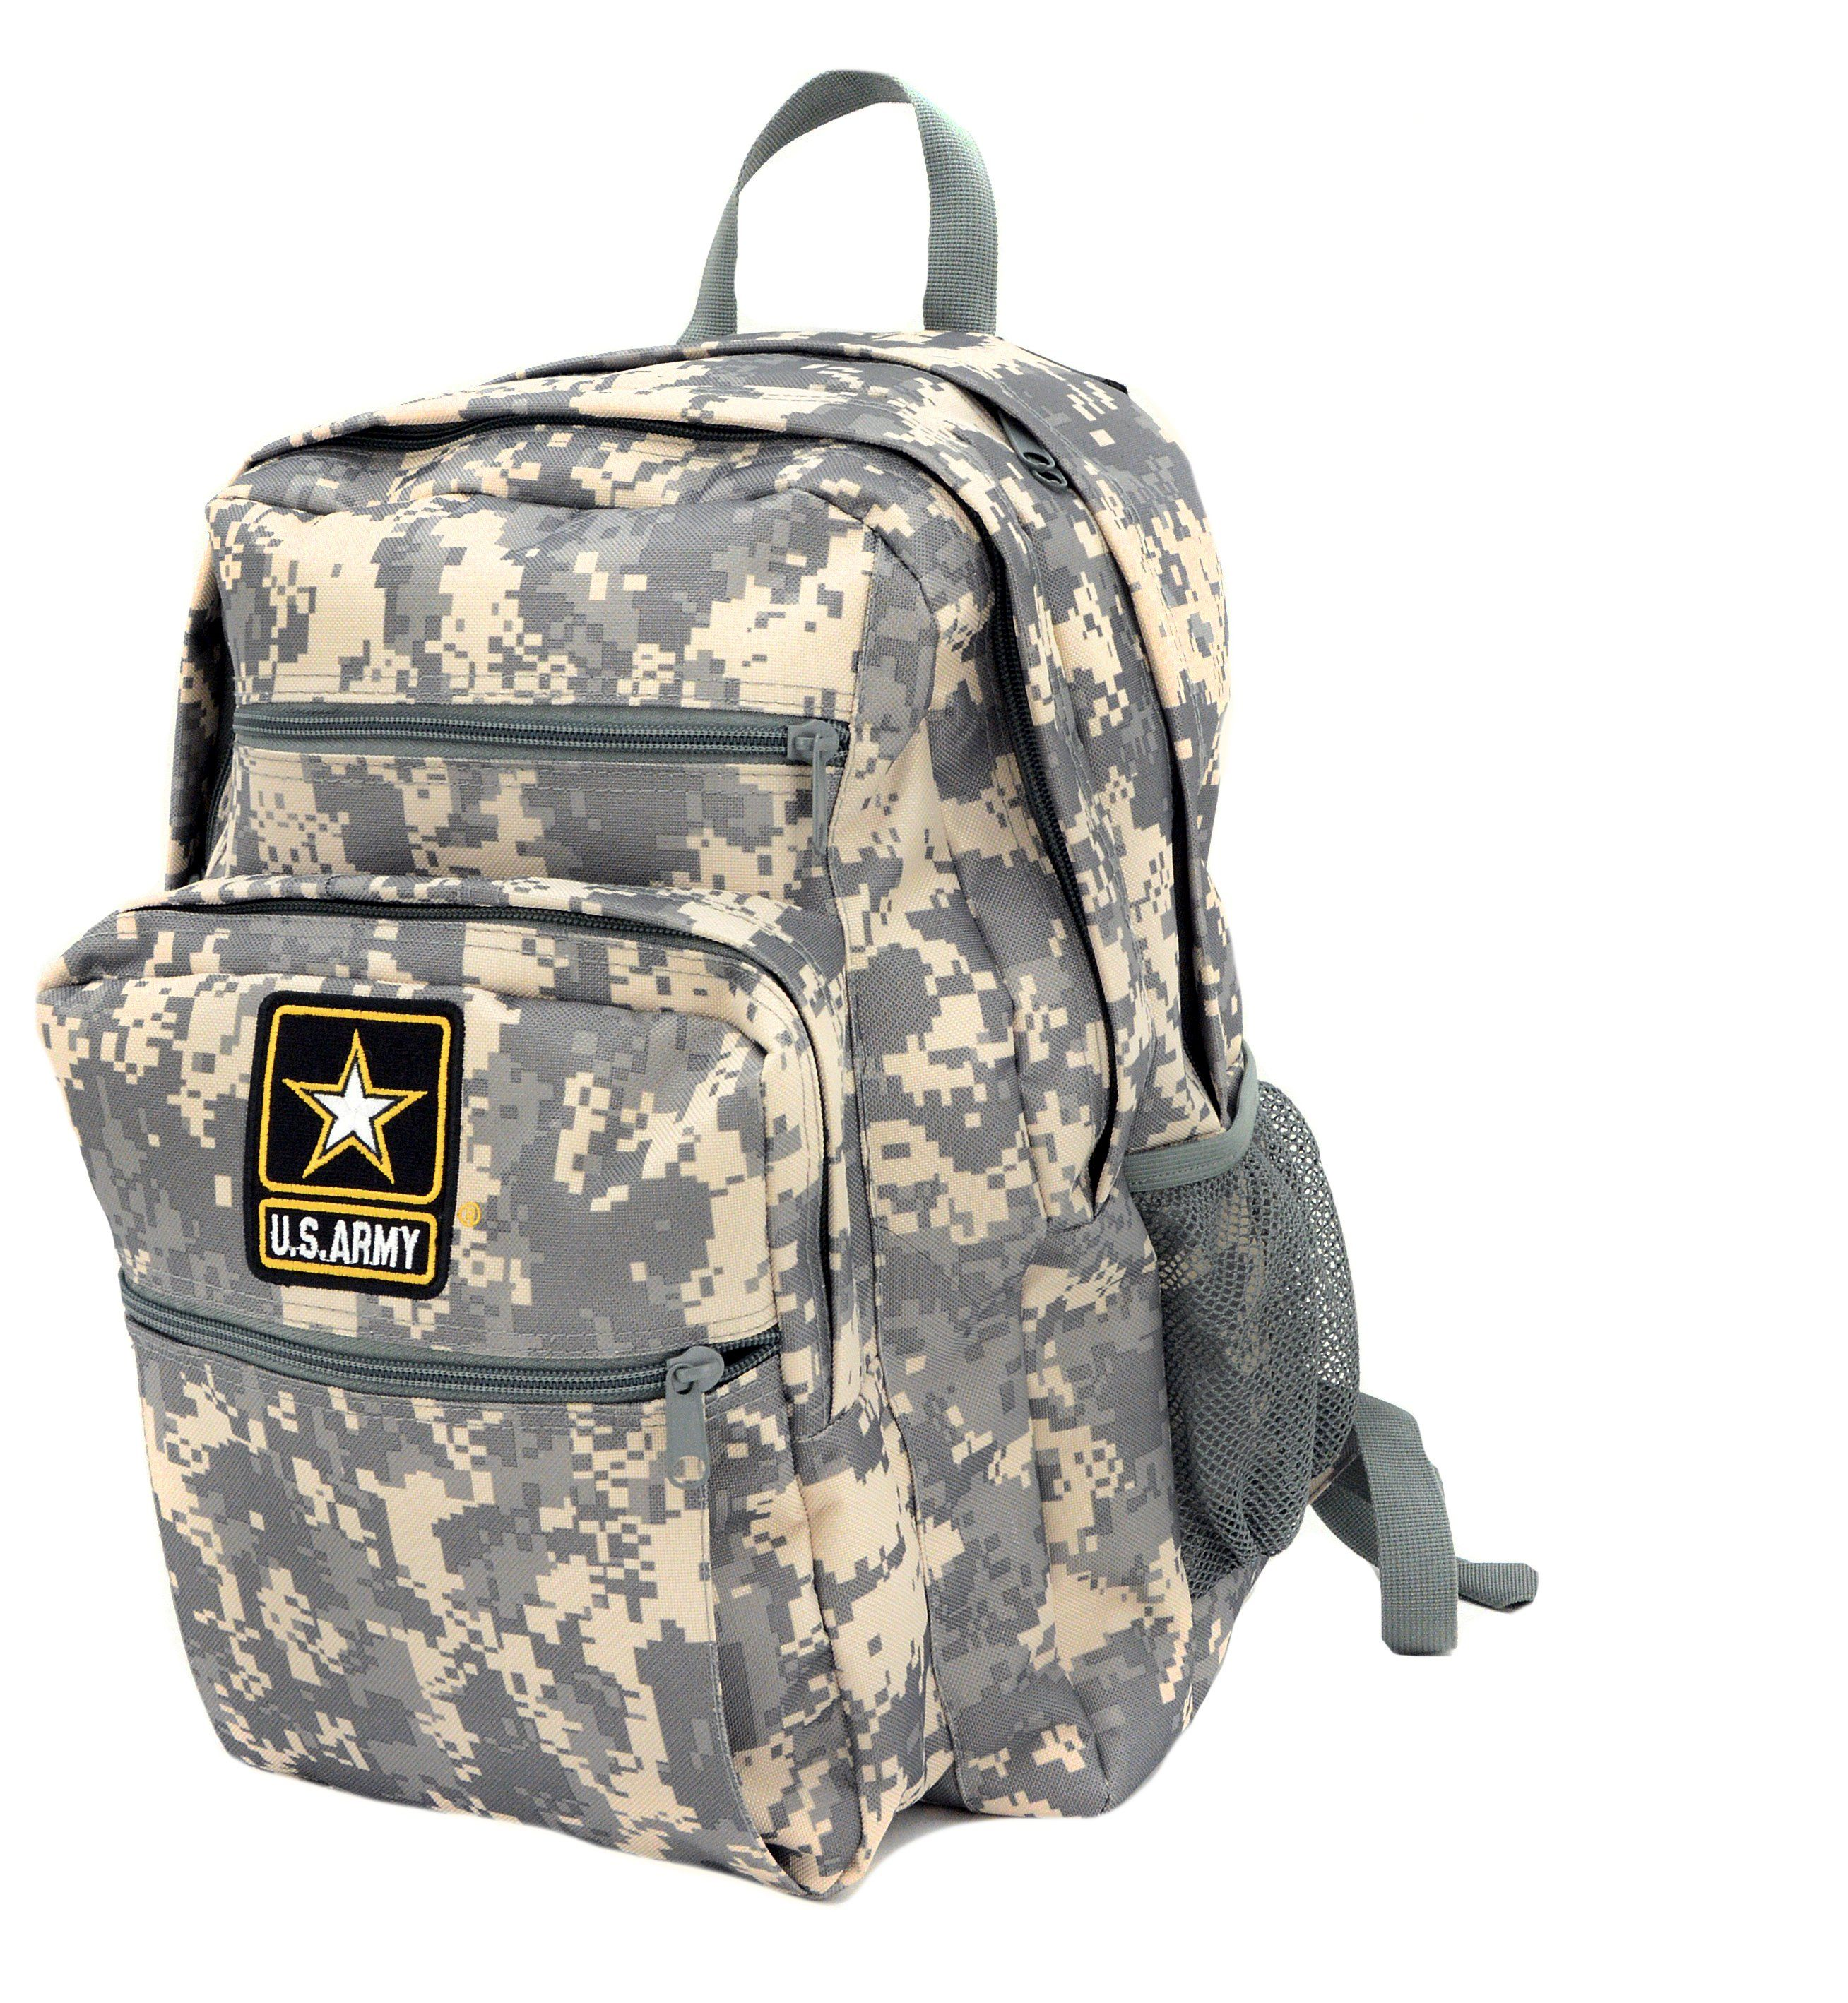 85947590e10 U.S. Army Logo Digital Camo Backpack | campin' | Camo backpack ...